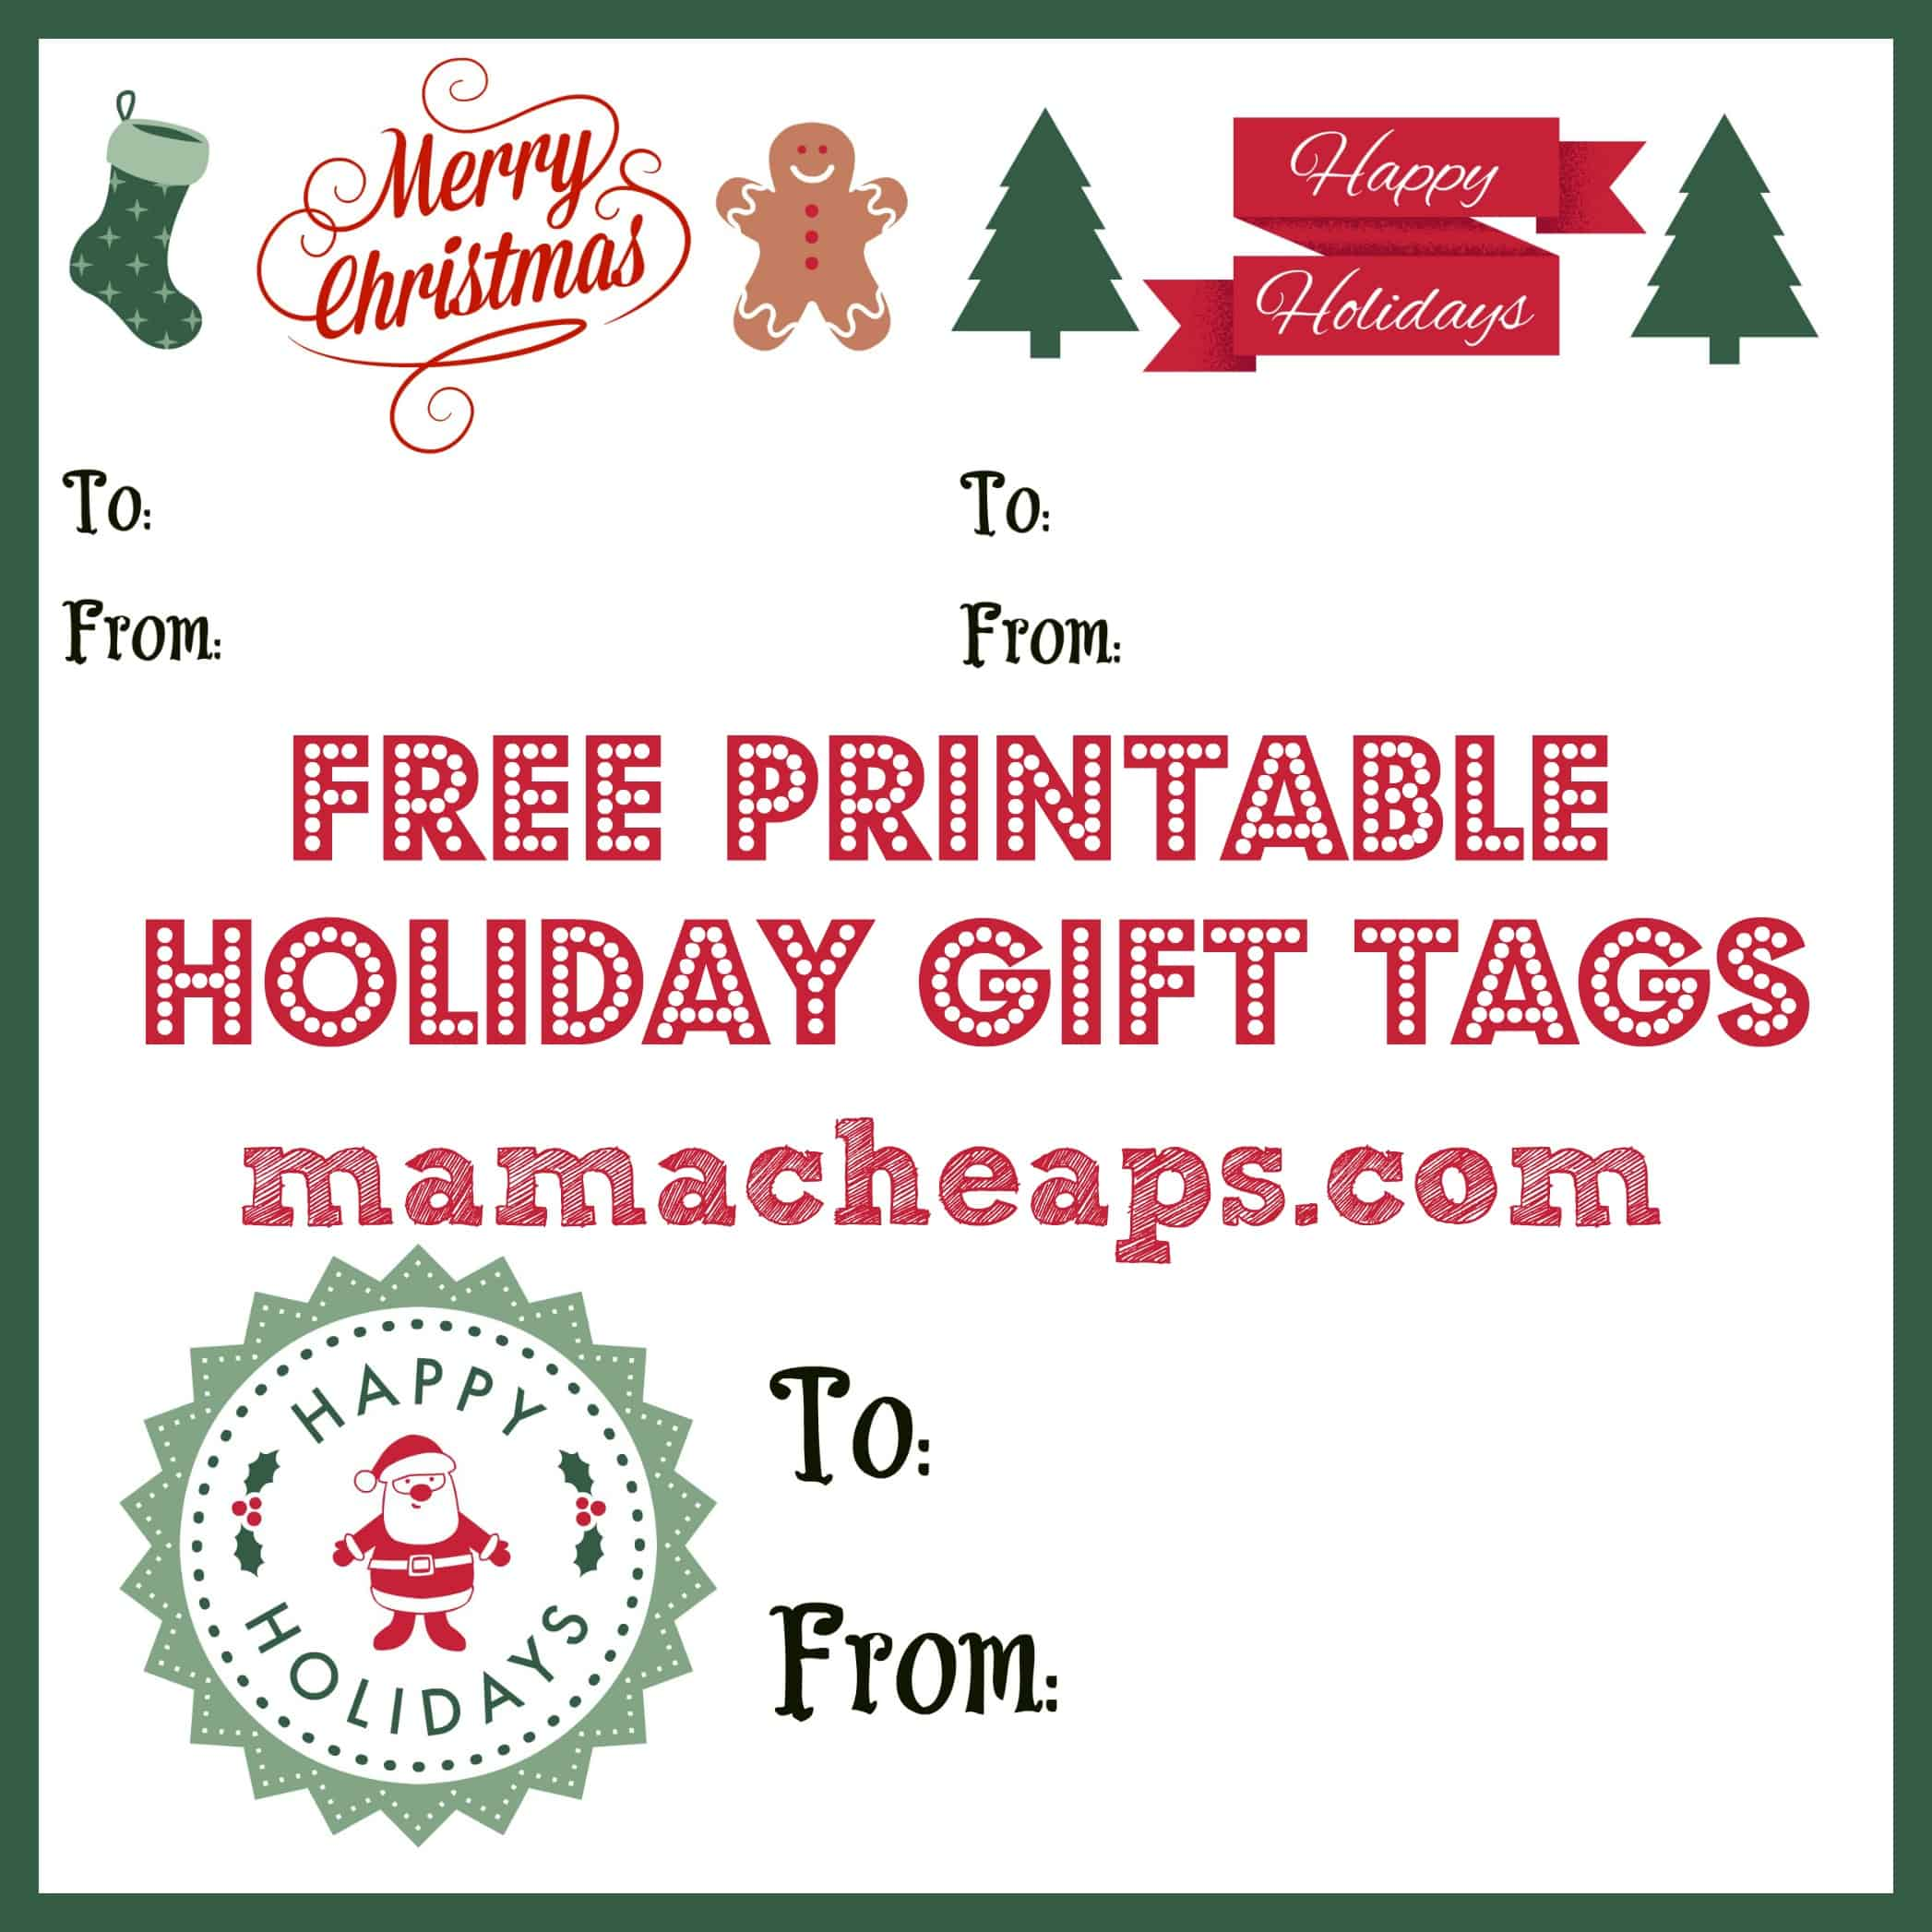 photo relating to Printable Holiday Gift Tags titled Free of charge Printable Vacation Reward Tags - Superb for Publications, And many others